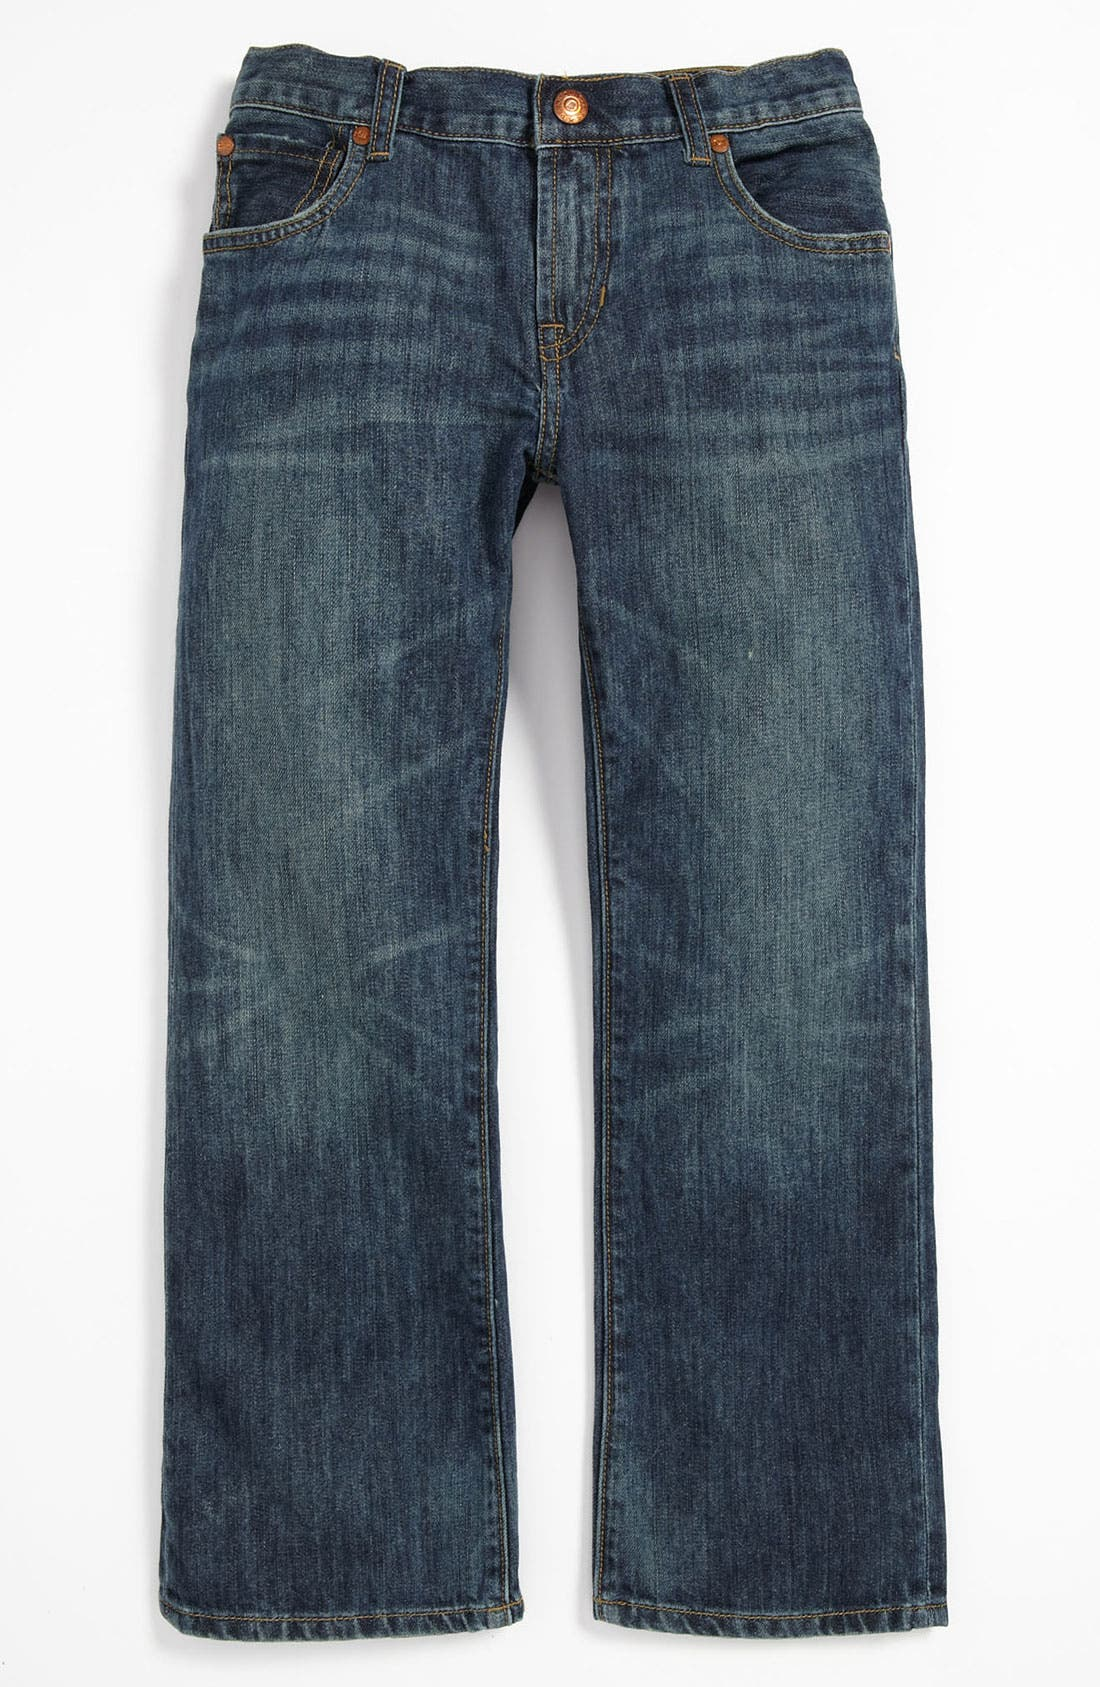 Alternate Image 2  - Peek 'Sullivan' Jeans (Toddler, Little Boys & Big Boys)